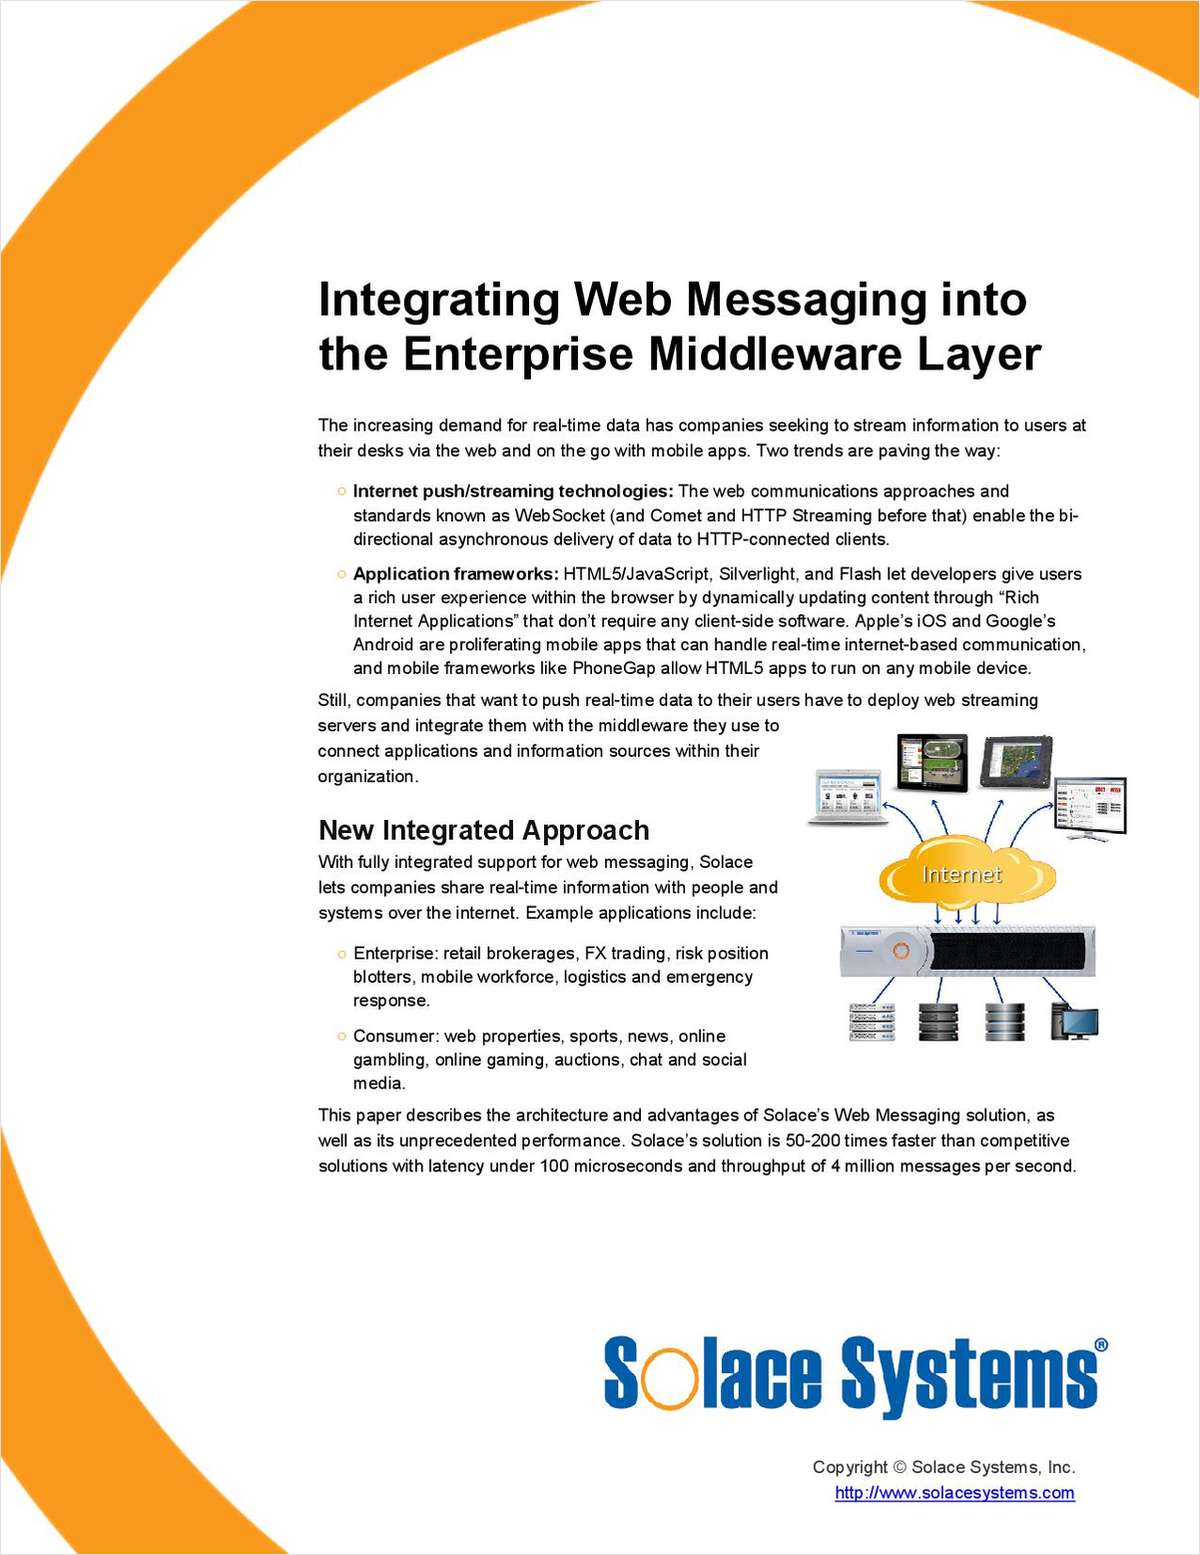 Integrating Web Messaging into the Enterprise Middleware Layer